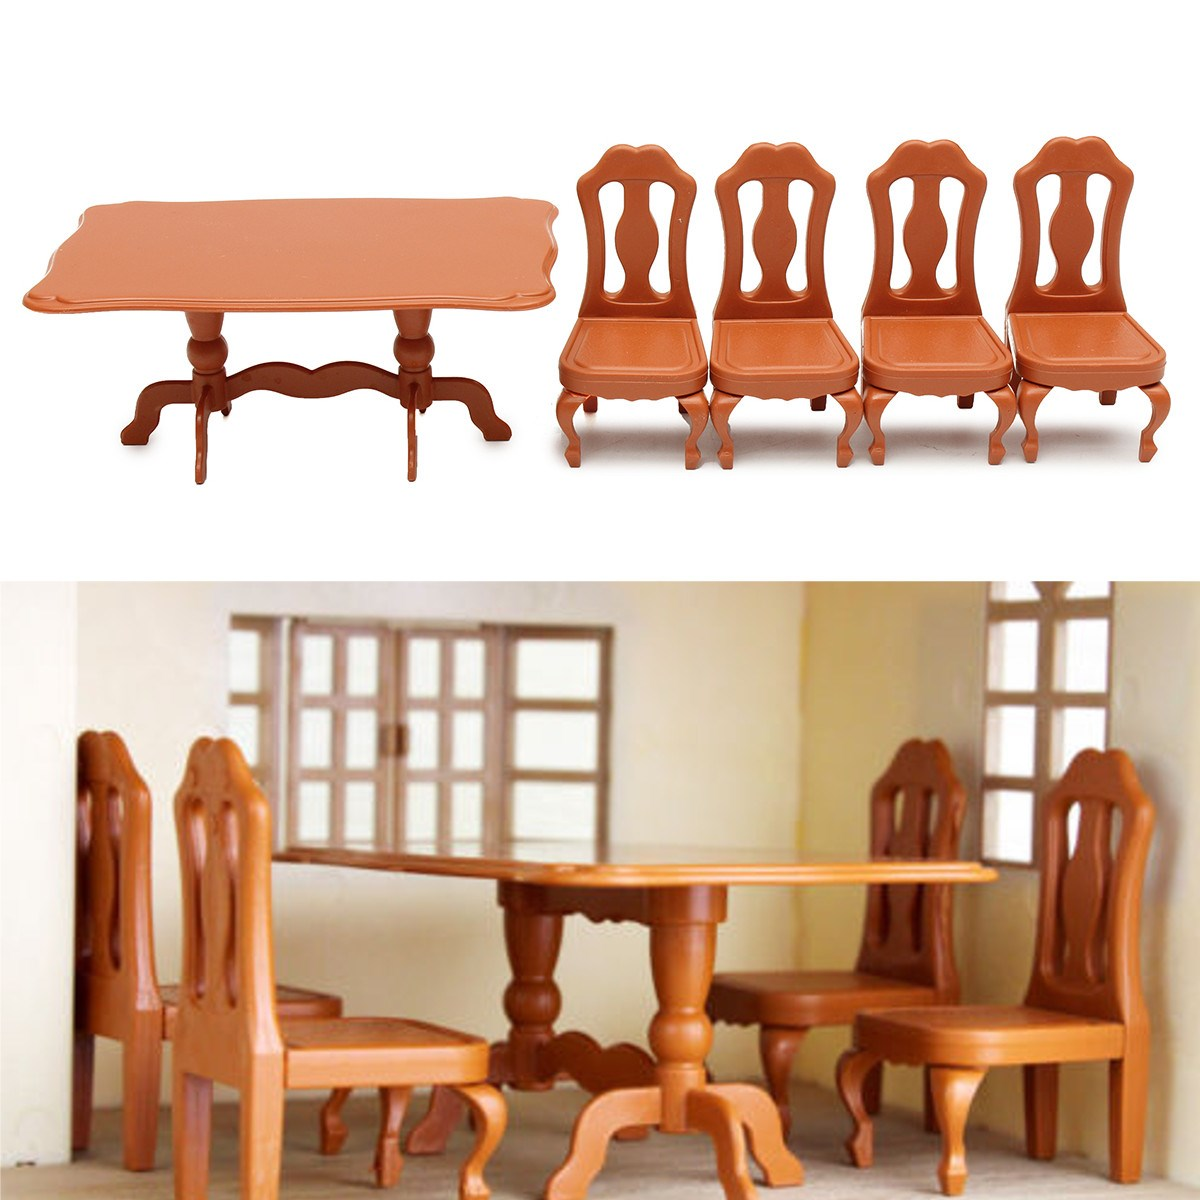 DIY Miniatura Furniture Dining Tables Chairs Sets For Mini Doll House Miniatures Furniture Toys Gifts For Children Adult dial vision adjustable lens eyeglasses